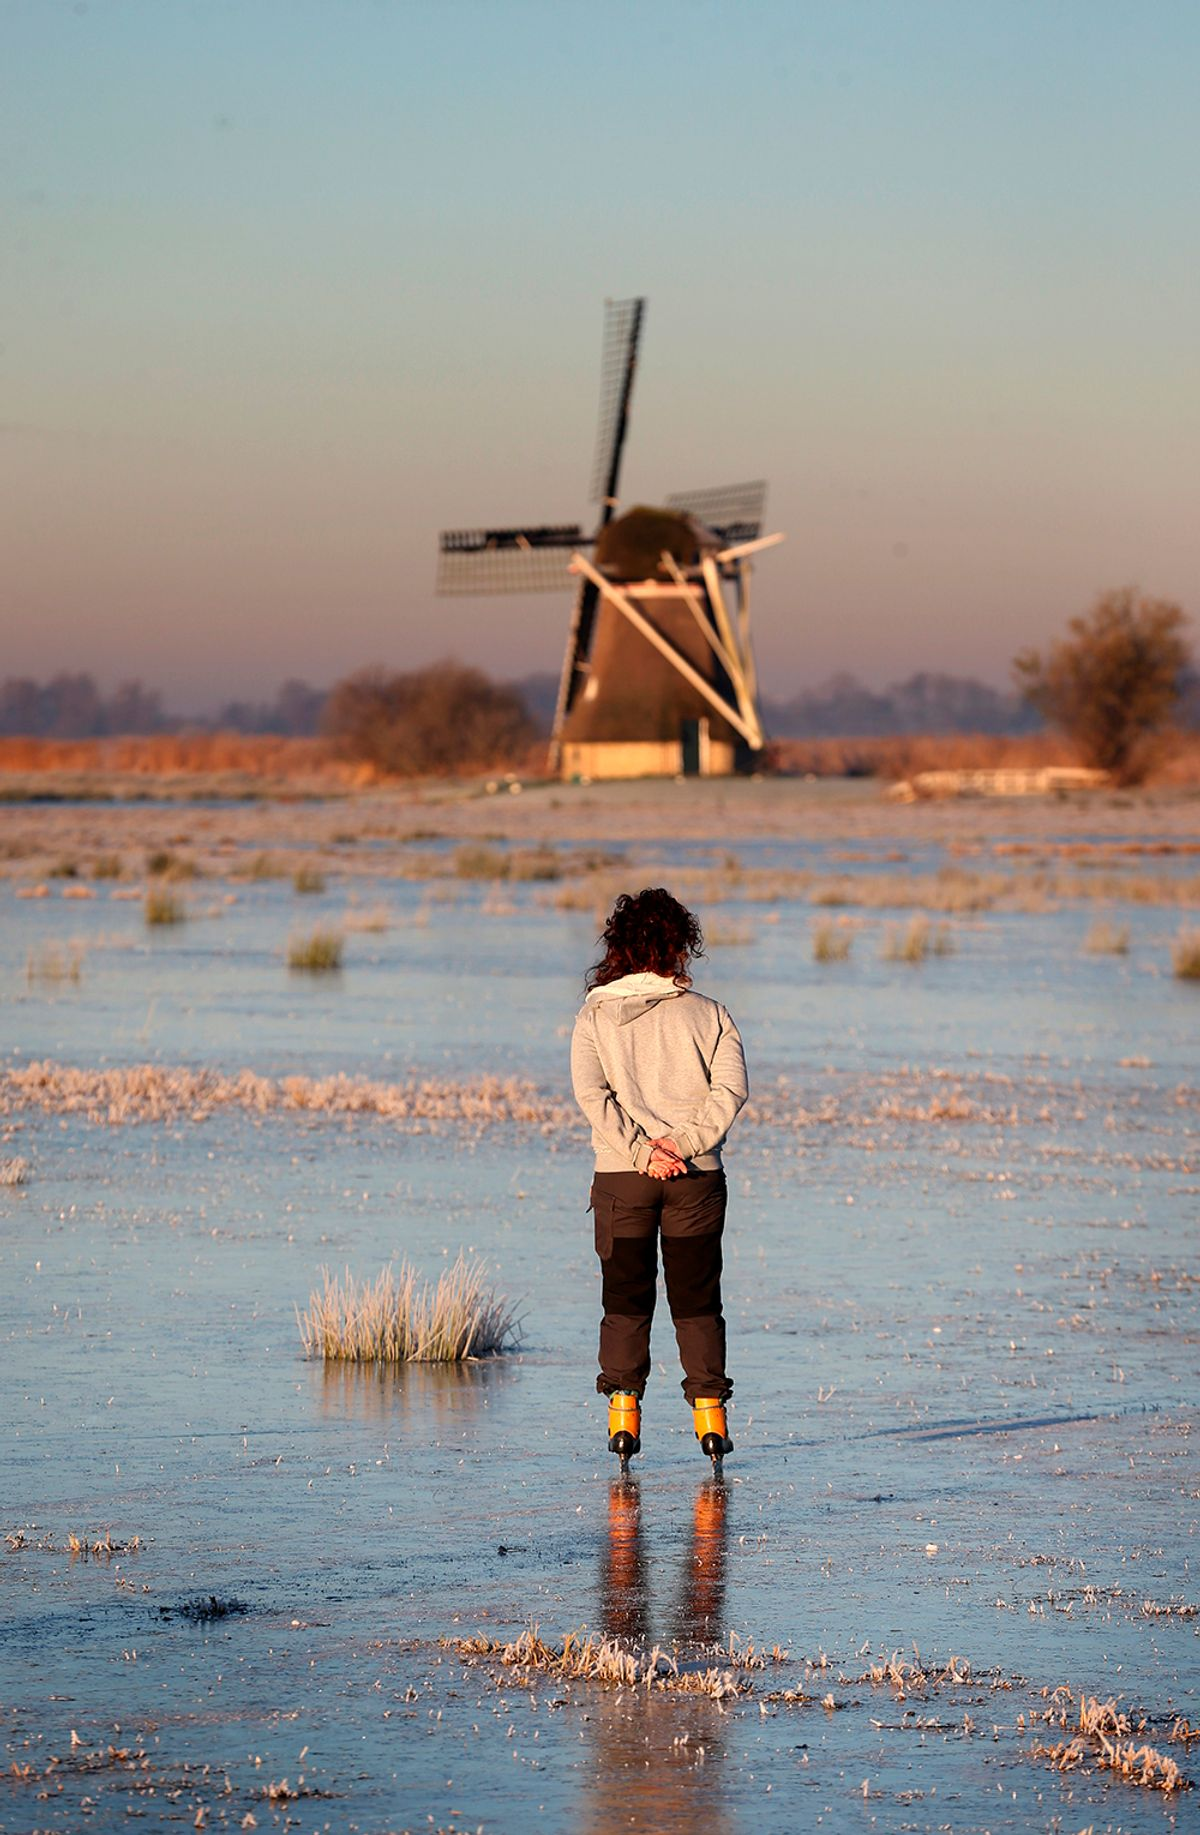 An ice skaters on nature skate near a mill in the Ryptsjerksterpolder in Tietjerk, on December 5, 2016.  / AFP / ANP / Catrinus van der Veen / Netherlands OUT        (Photo credit should read CATRINUS VAN DER VEEN/AFP/Getty Images) (Afp/getty Images)